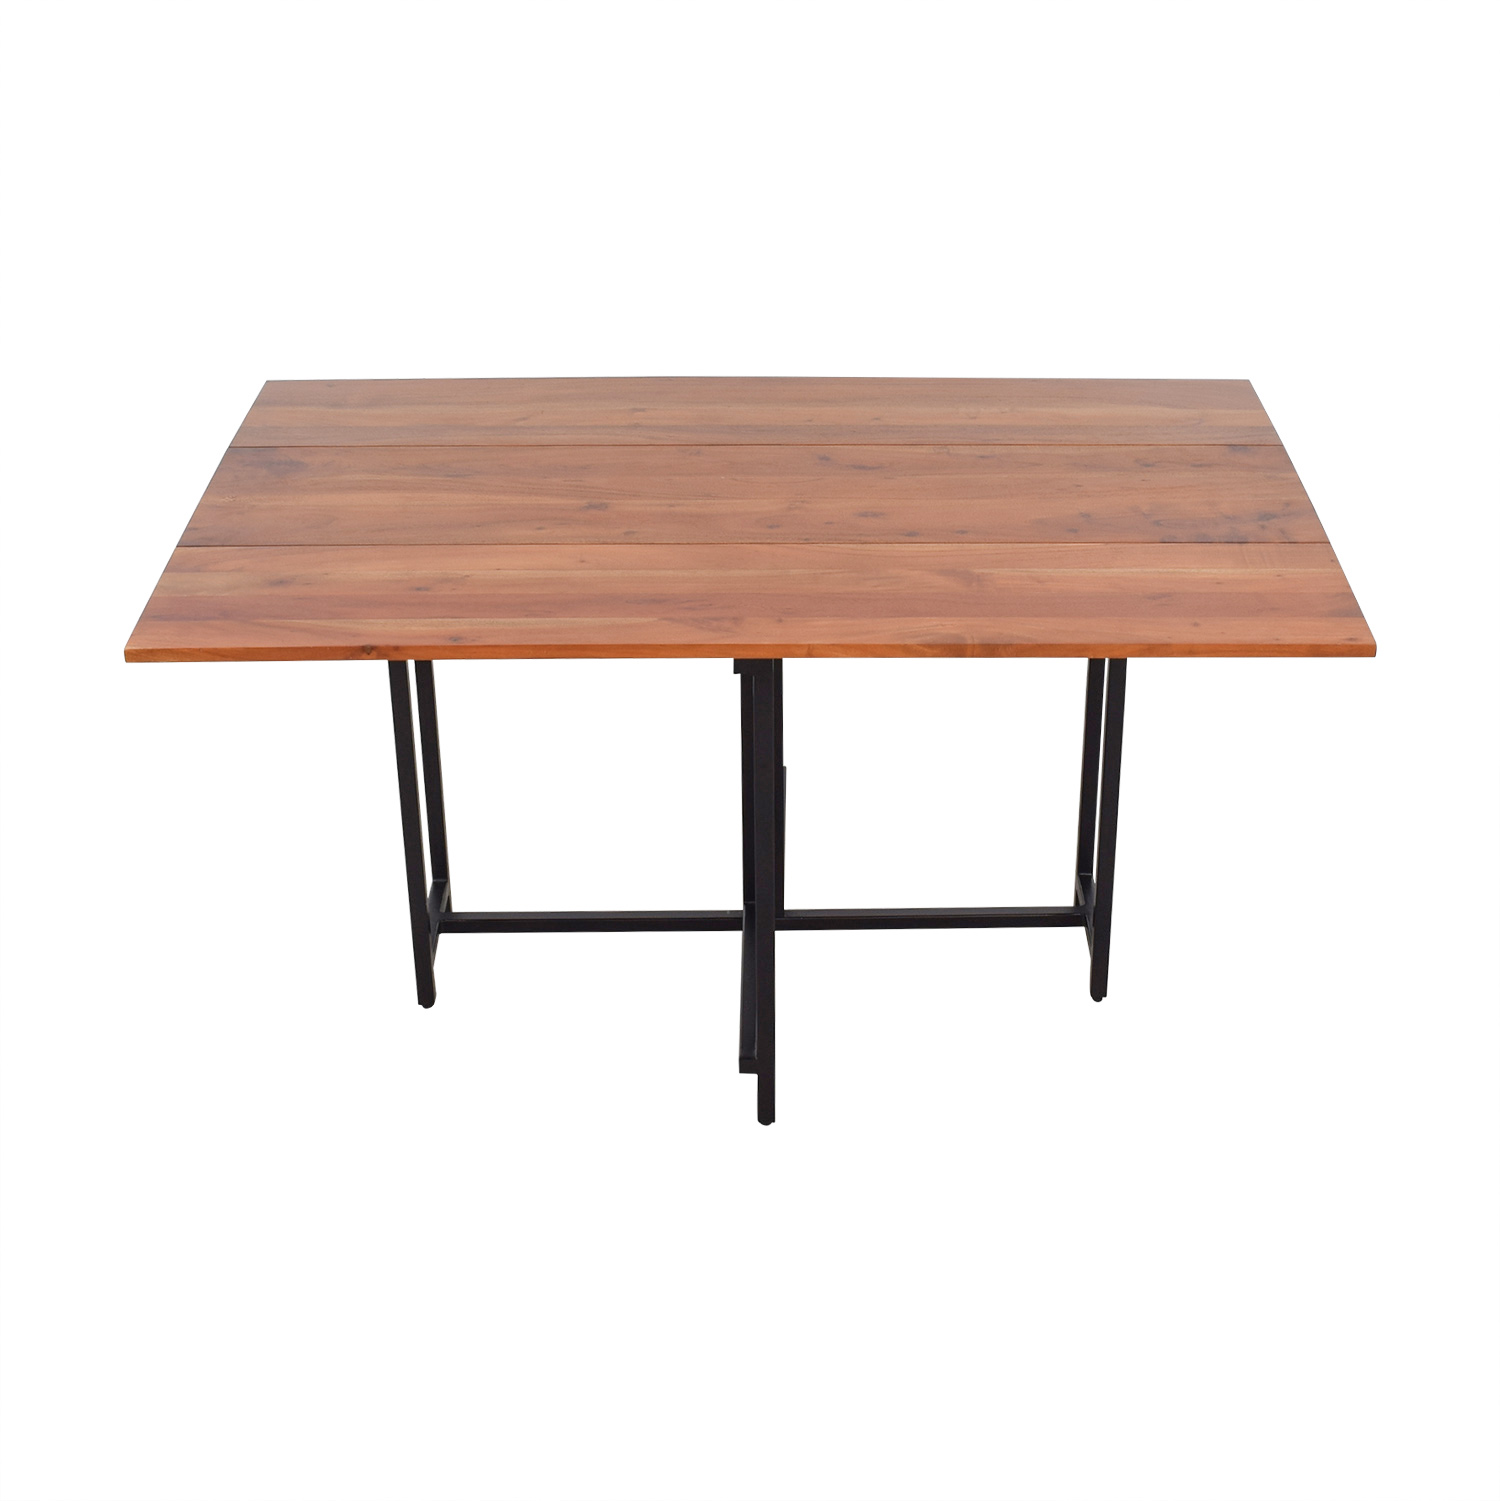 Crate & Barrel Crate & Barrel Origami Extendable Leaf Table nj